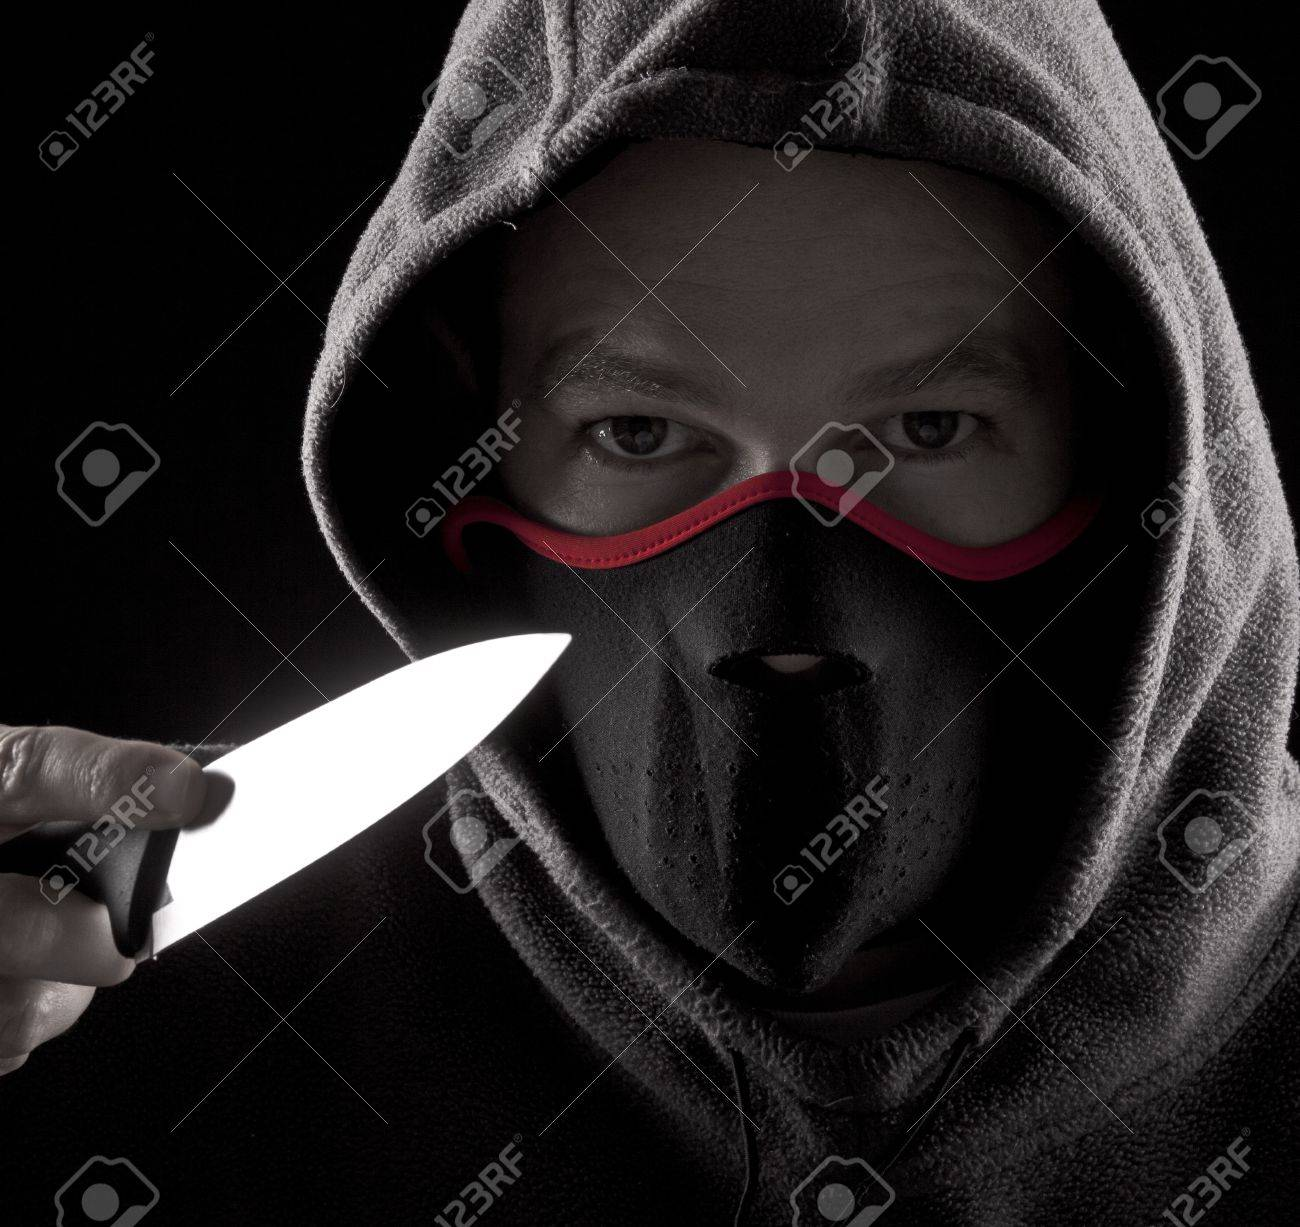 Man with a knife and mouth cover Stock Photo - 7416610